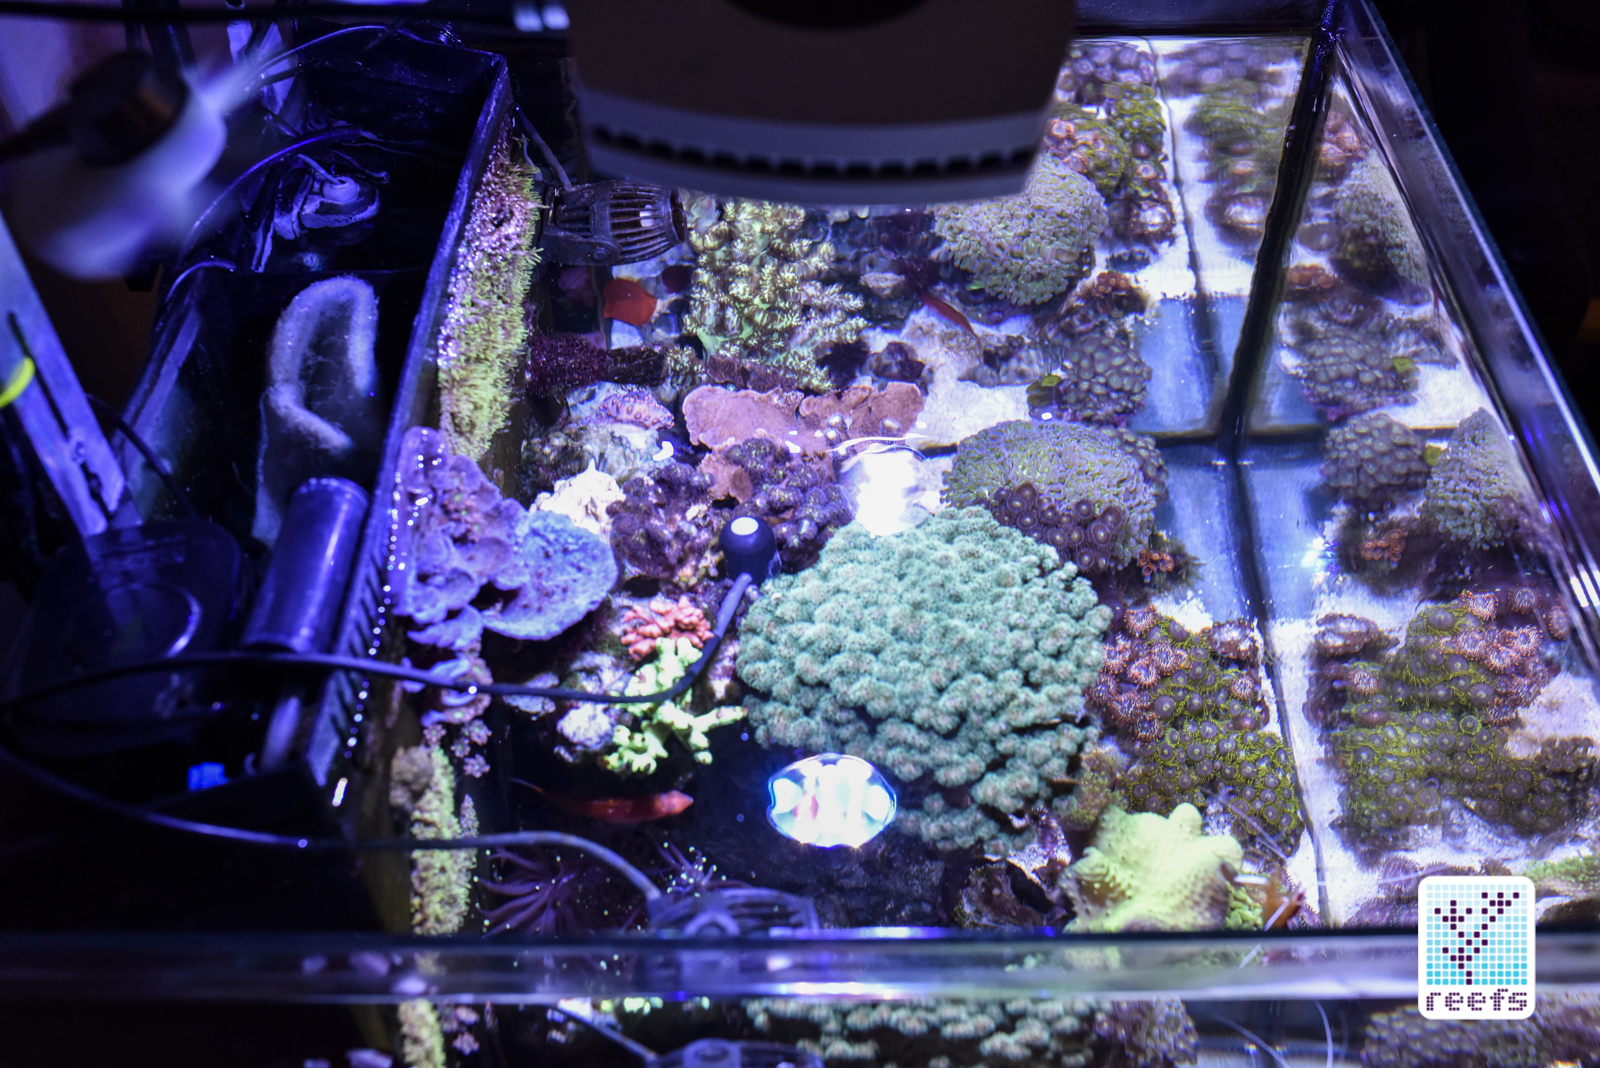 PMK Probe in my tank. I opted for installing it without the rock due to lack of space